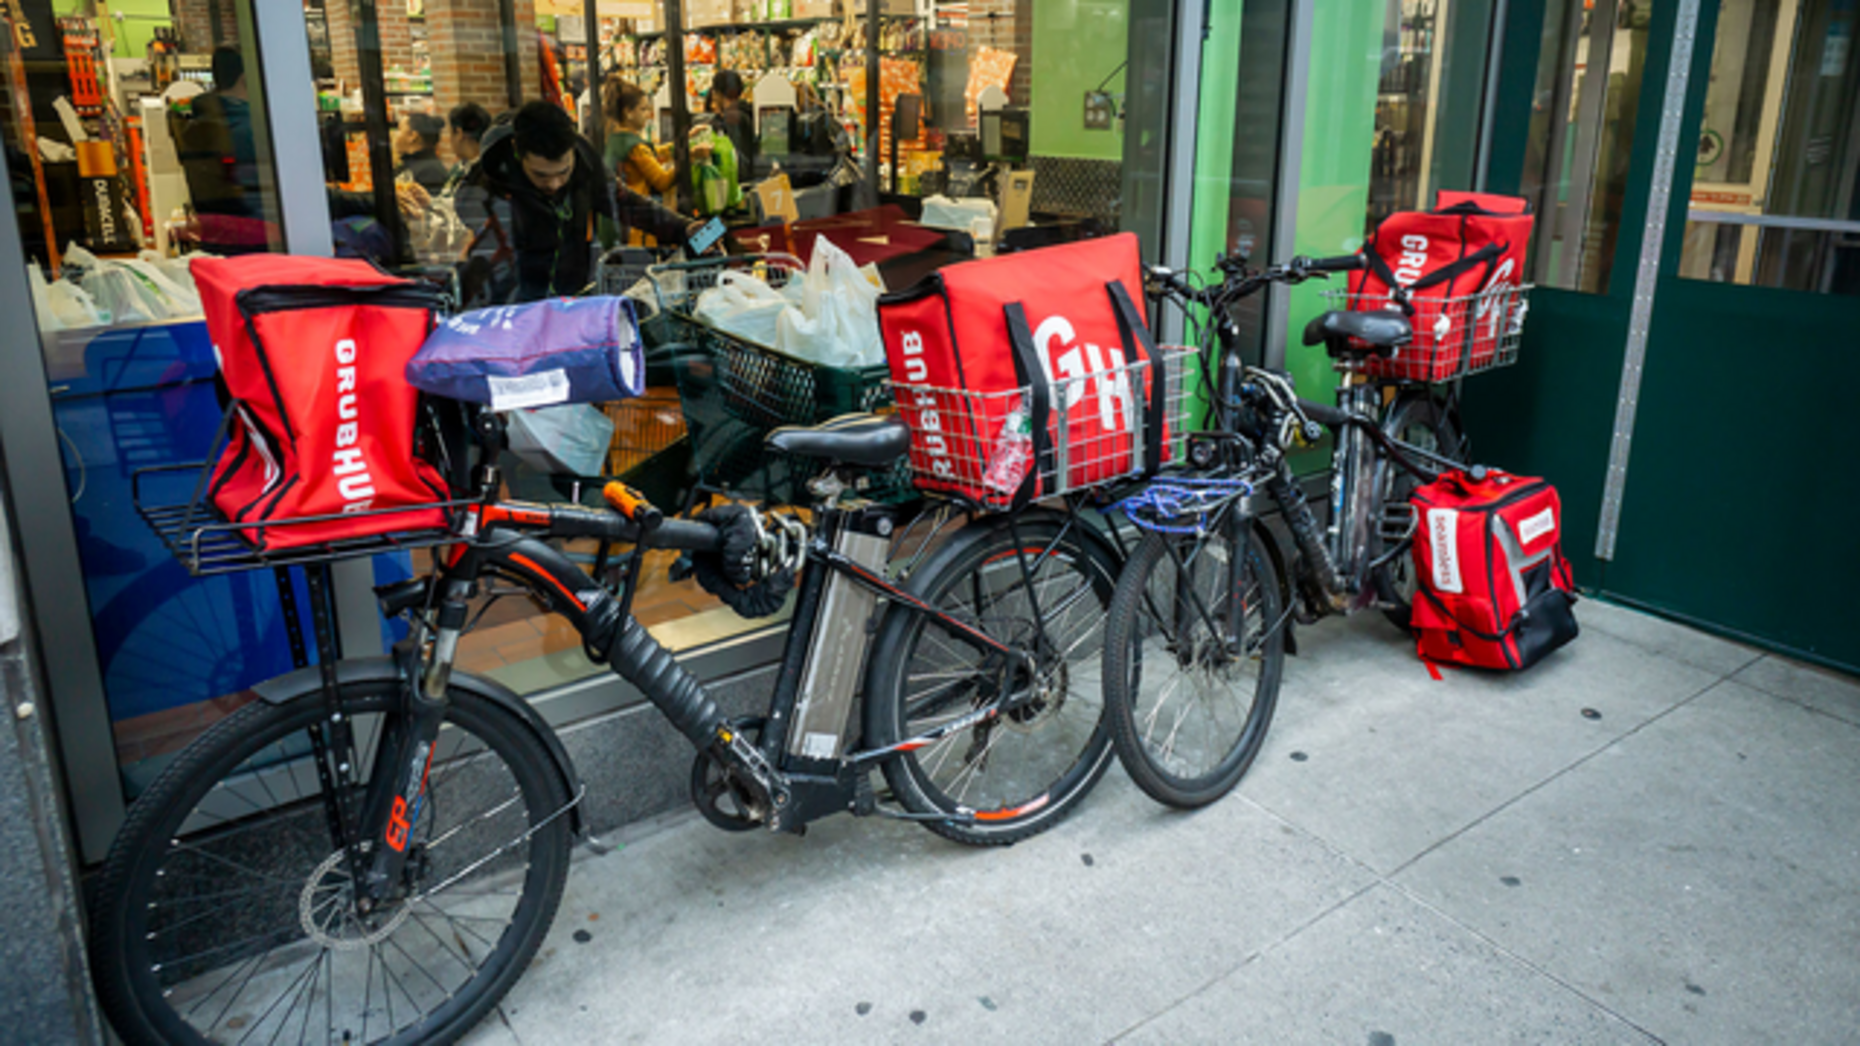 GrubHub delivery bicycles in New York City. Photo by Shutterstock